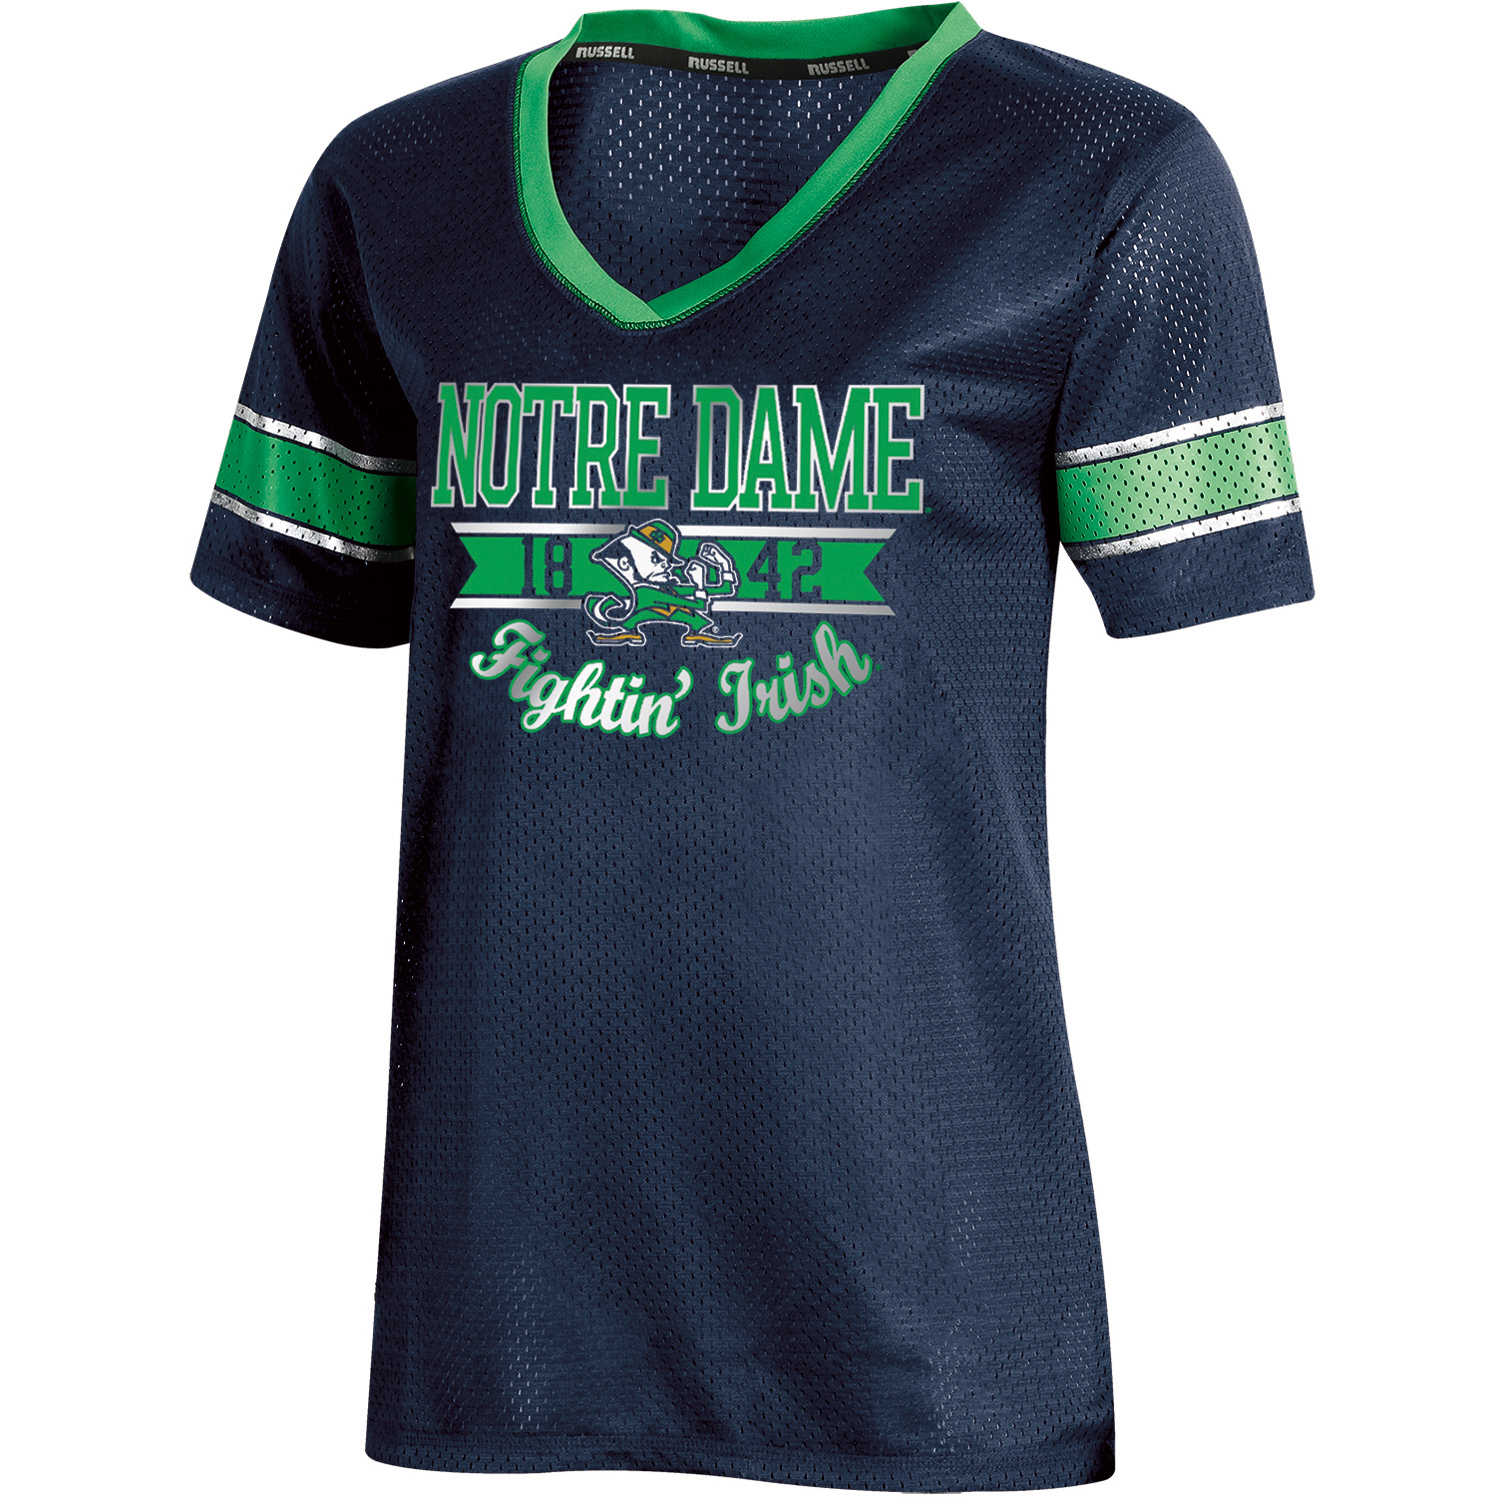 Women's Russell Navy Notre Dame Fighting Irish Fashion Jersey V-Neck T-Shirt